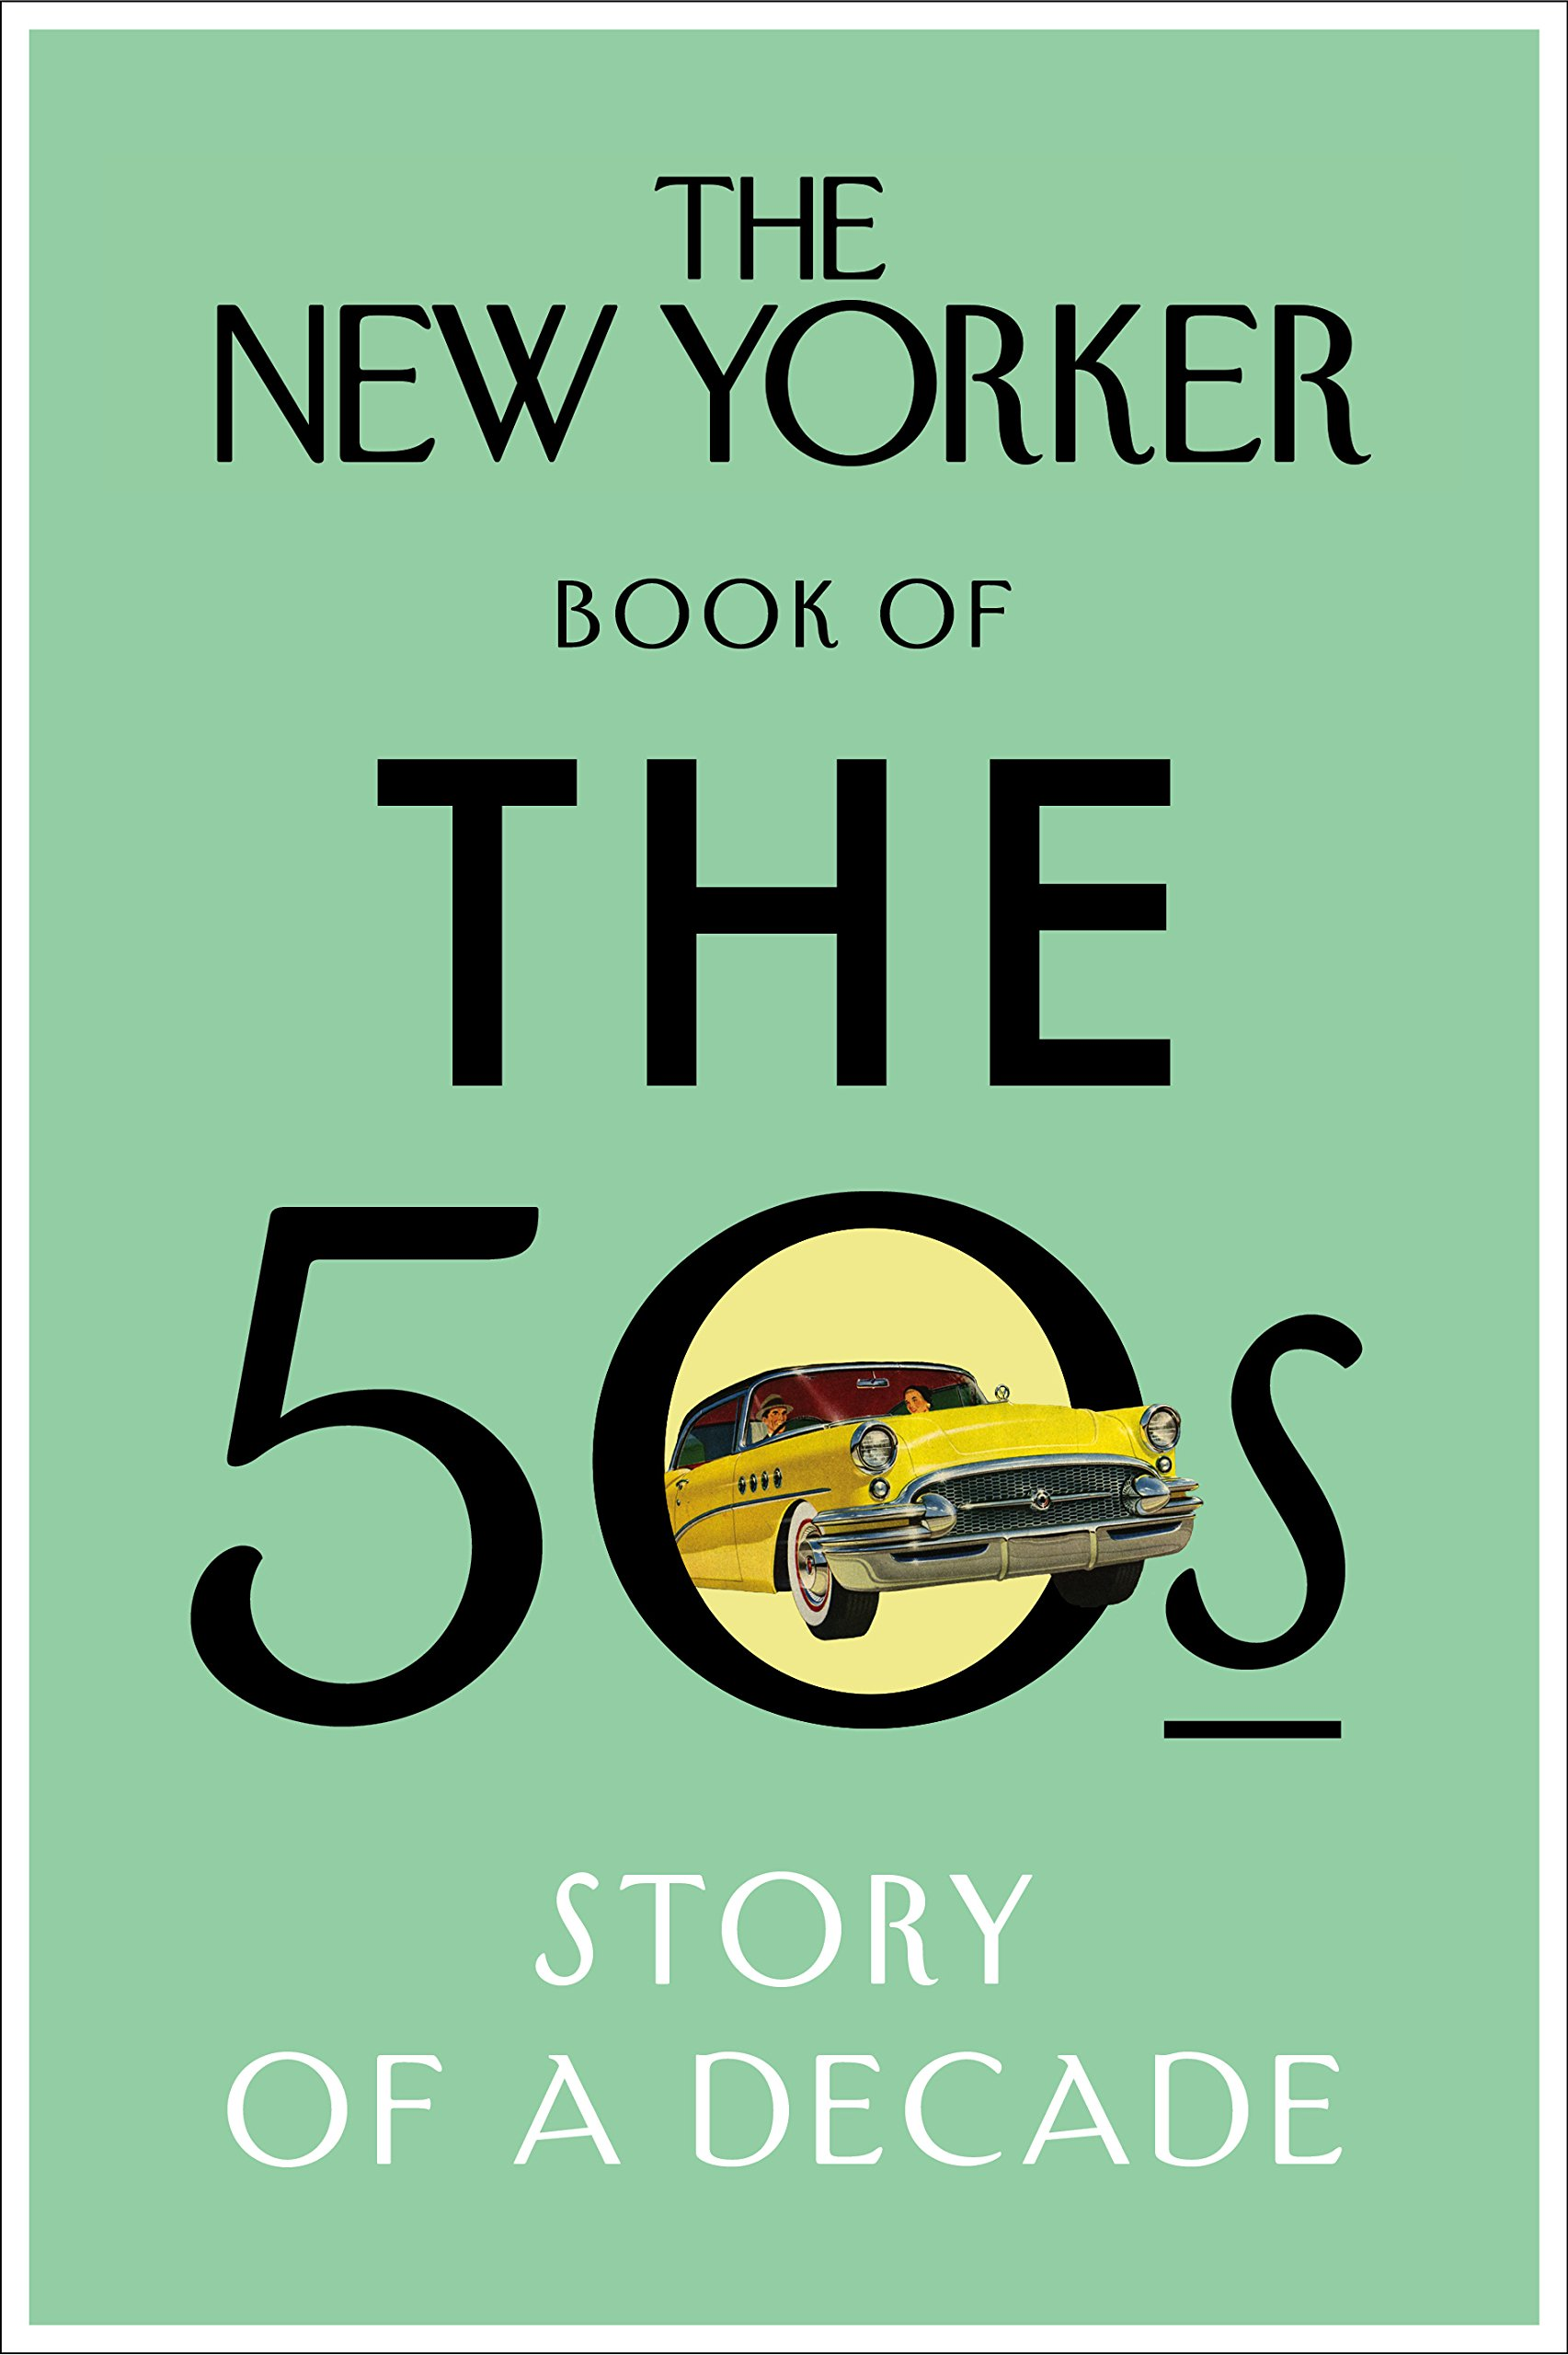 The New Yorker Book of the 50s: Story of a Decade (New Yorker Magazine):  Amazon.co.uk: The New Yorker Magazine: 9780434022427: Books